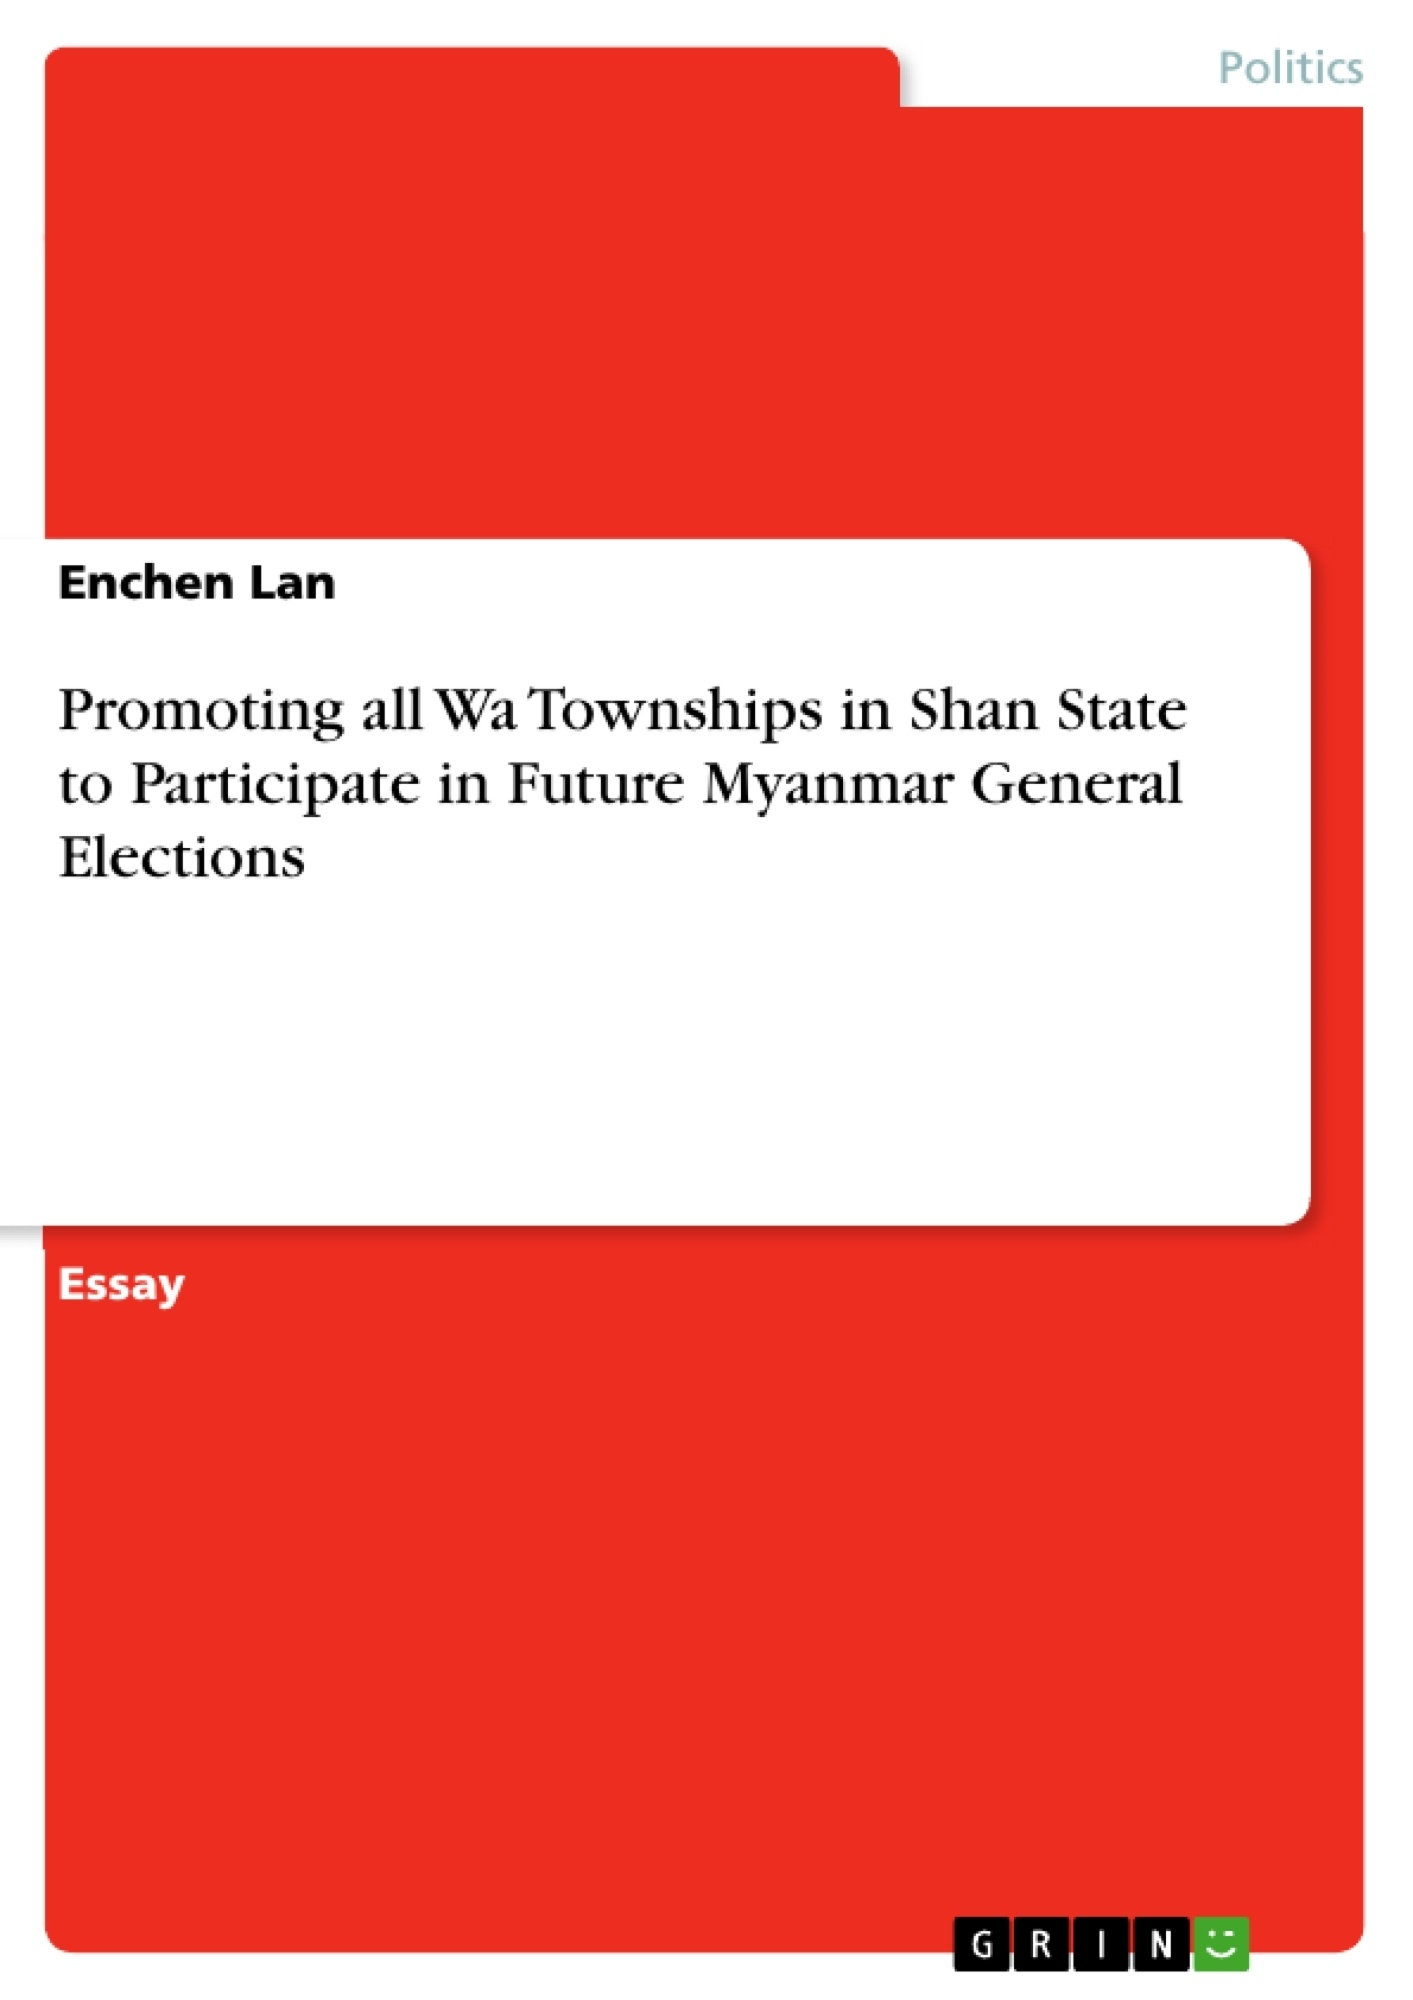 Title: Promoting all Wa Townships in Shan State to Participate in Future Myanmar General Elections